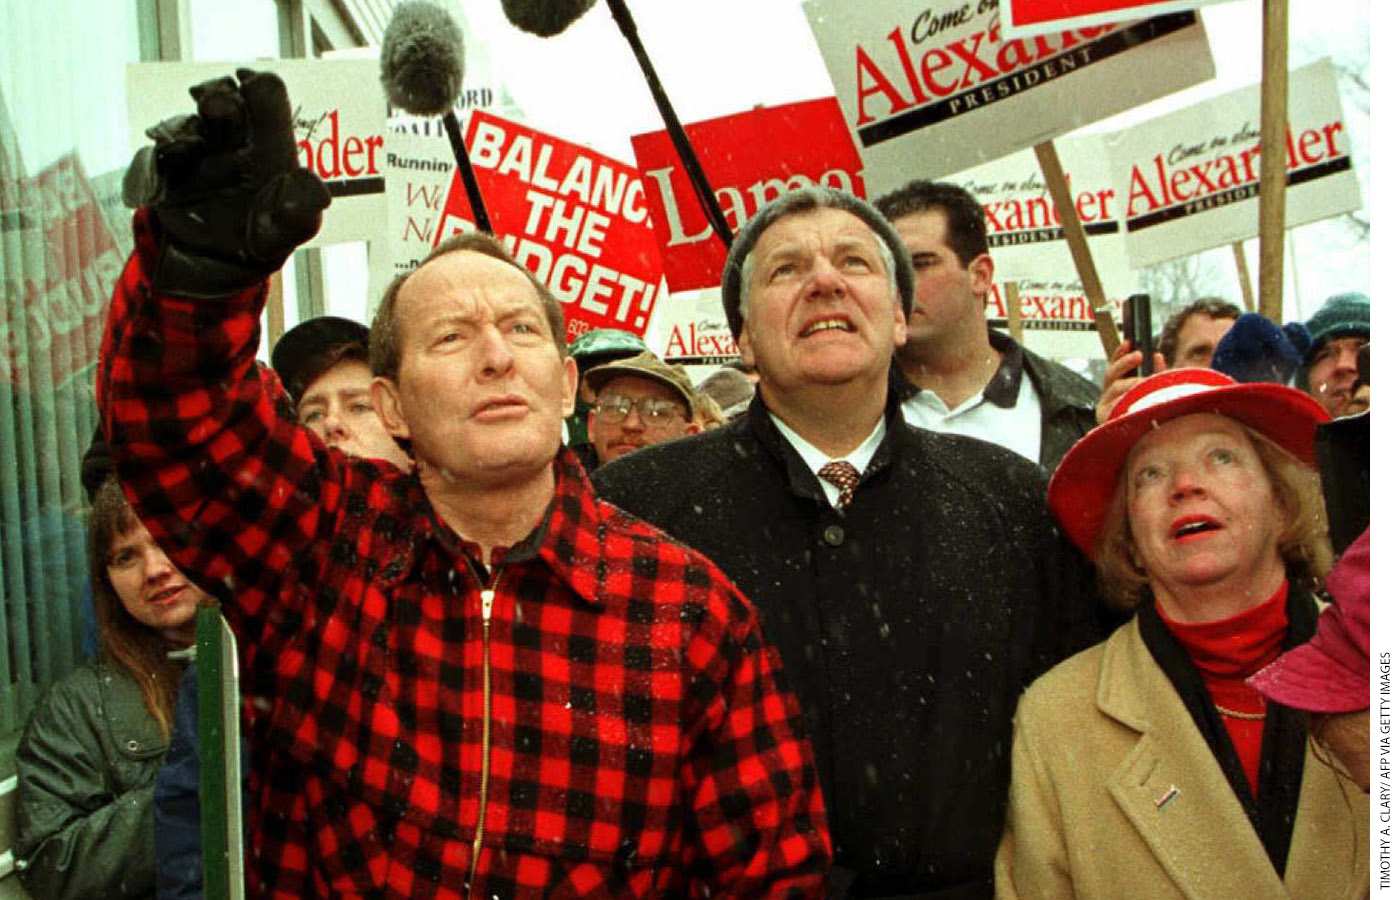 Alexander waves to supporters in Milford, New Hampshire, during his presidential campaign, February 14, 1996.